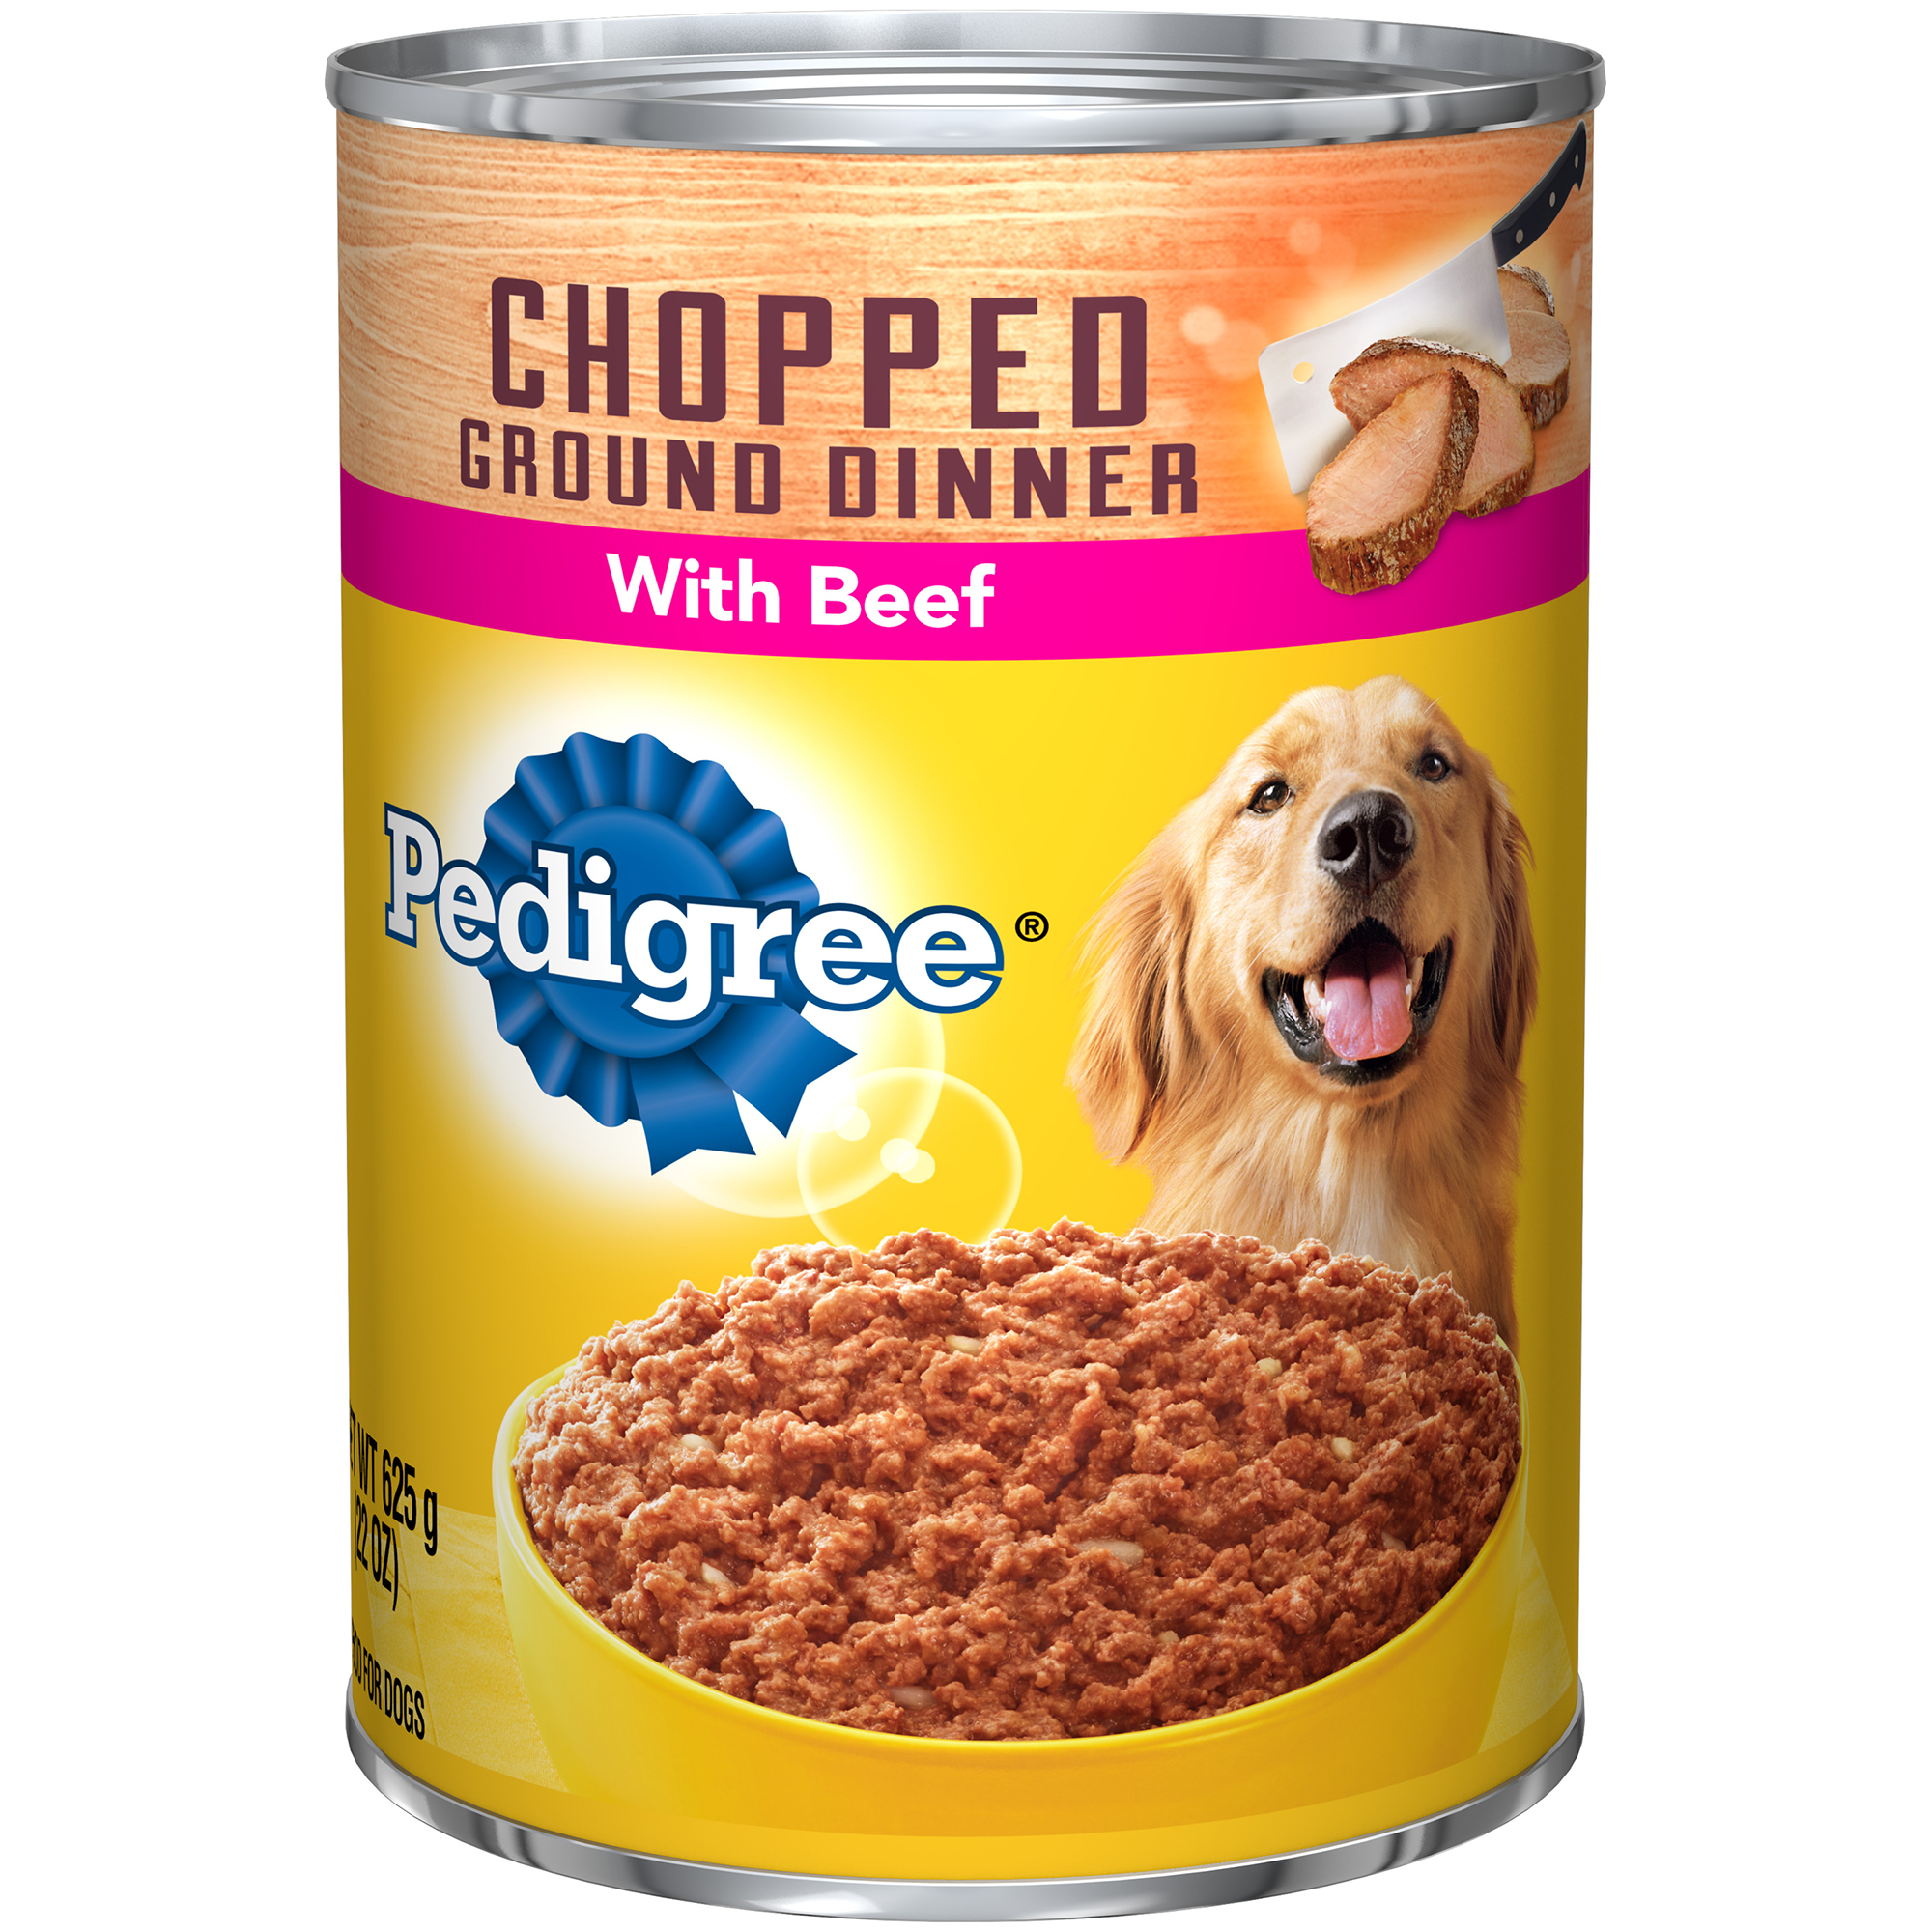 PEDIGREE Chopped Ground Dinner With Beef Canned Dog Food 22 Ounces